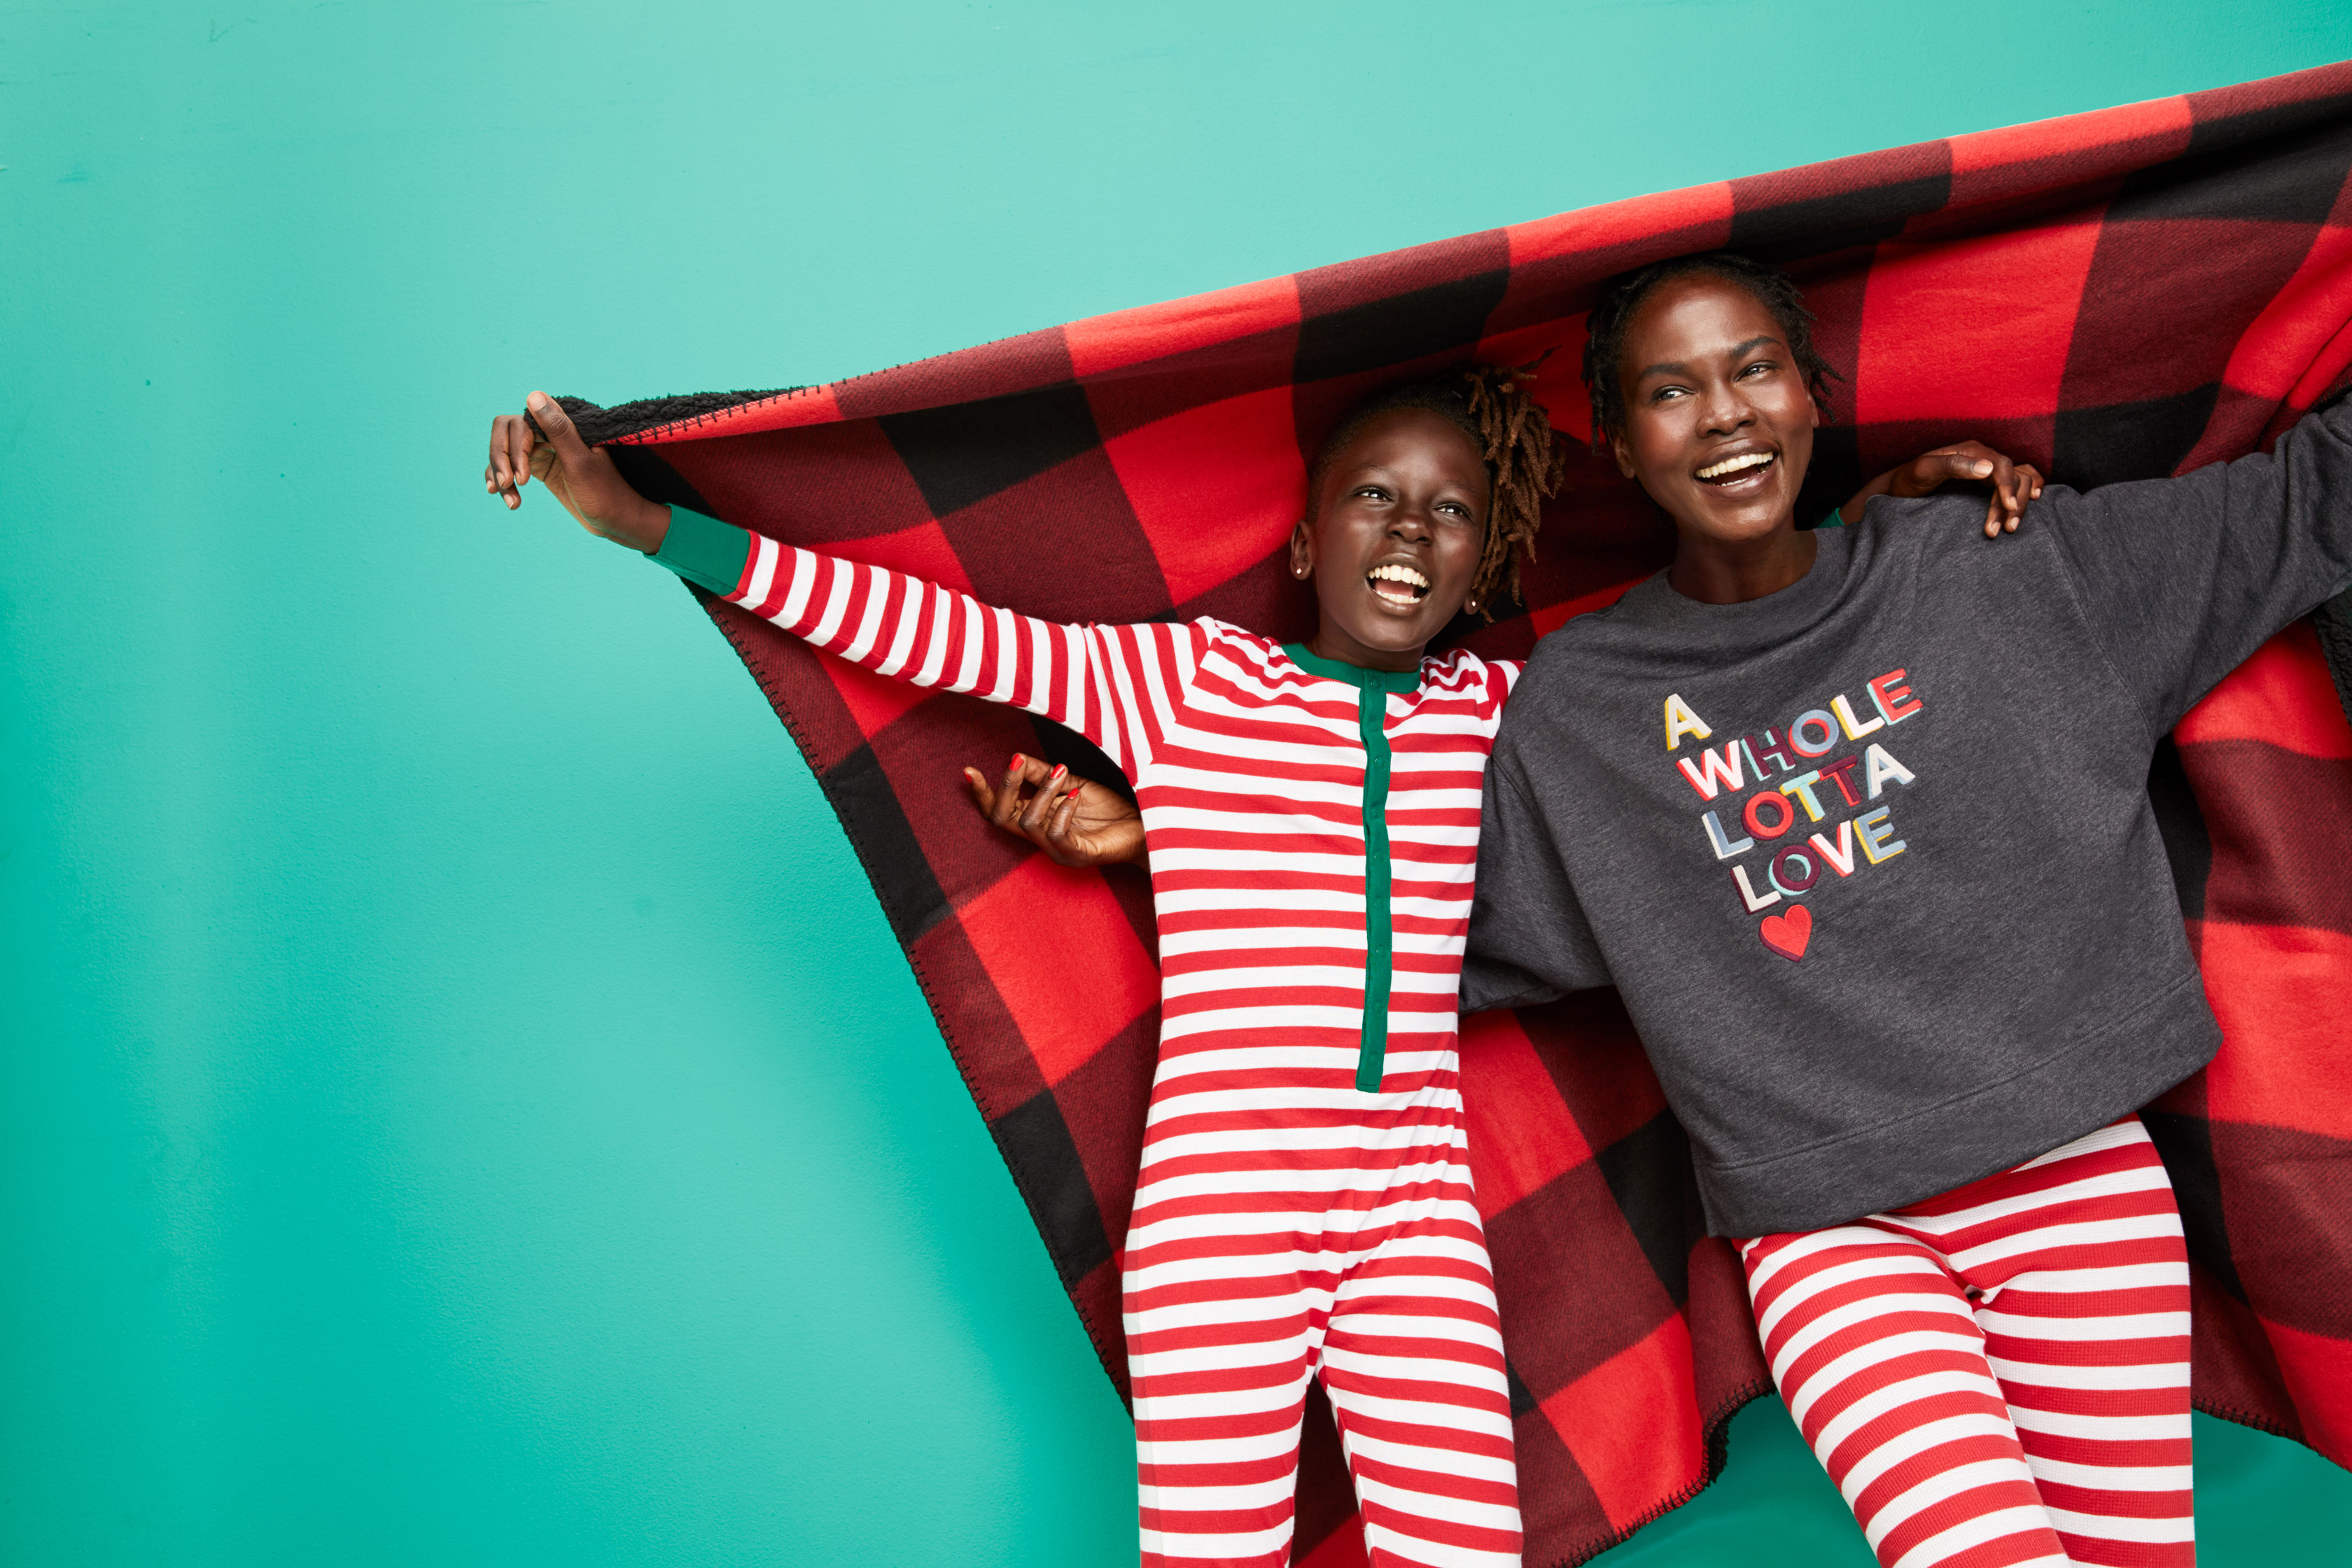 "<p>2020 is the year of the PJ's.{&nbsp;} Quarantine is allll about that cozy life and look no further than Old Navy for all your matching family jammy needs.{&nbsp;} They have tons of options, I'm partial to these bad boys.{&nbsp;}<a  href=""https://oldnavy.gap.com/browse/product.do?pid=645385032&cid=1144509&pcid=1143966&vid=1&grid=pds_46_209_1#pdp-page-content"" target=""_blank"" title=""https://oldnavy.gap.com/browse/product.do?pid=645385032&cid=1144509&pcid=1143966&vid=1&grid=pds_46_209_1#pdp-page-content"">Shop the look</a>.{&nbsp;} (Image: Old Navy){&nbsp;}</p>"